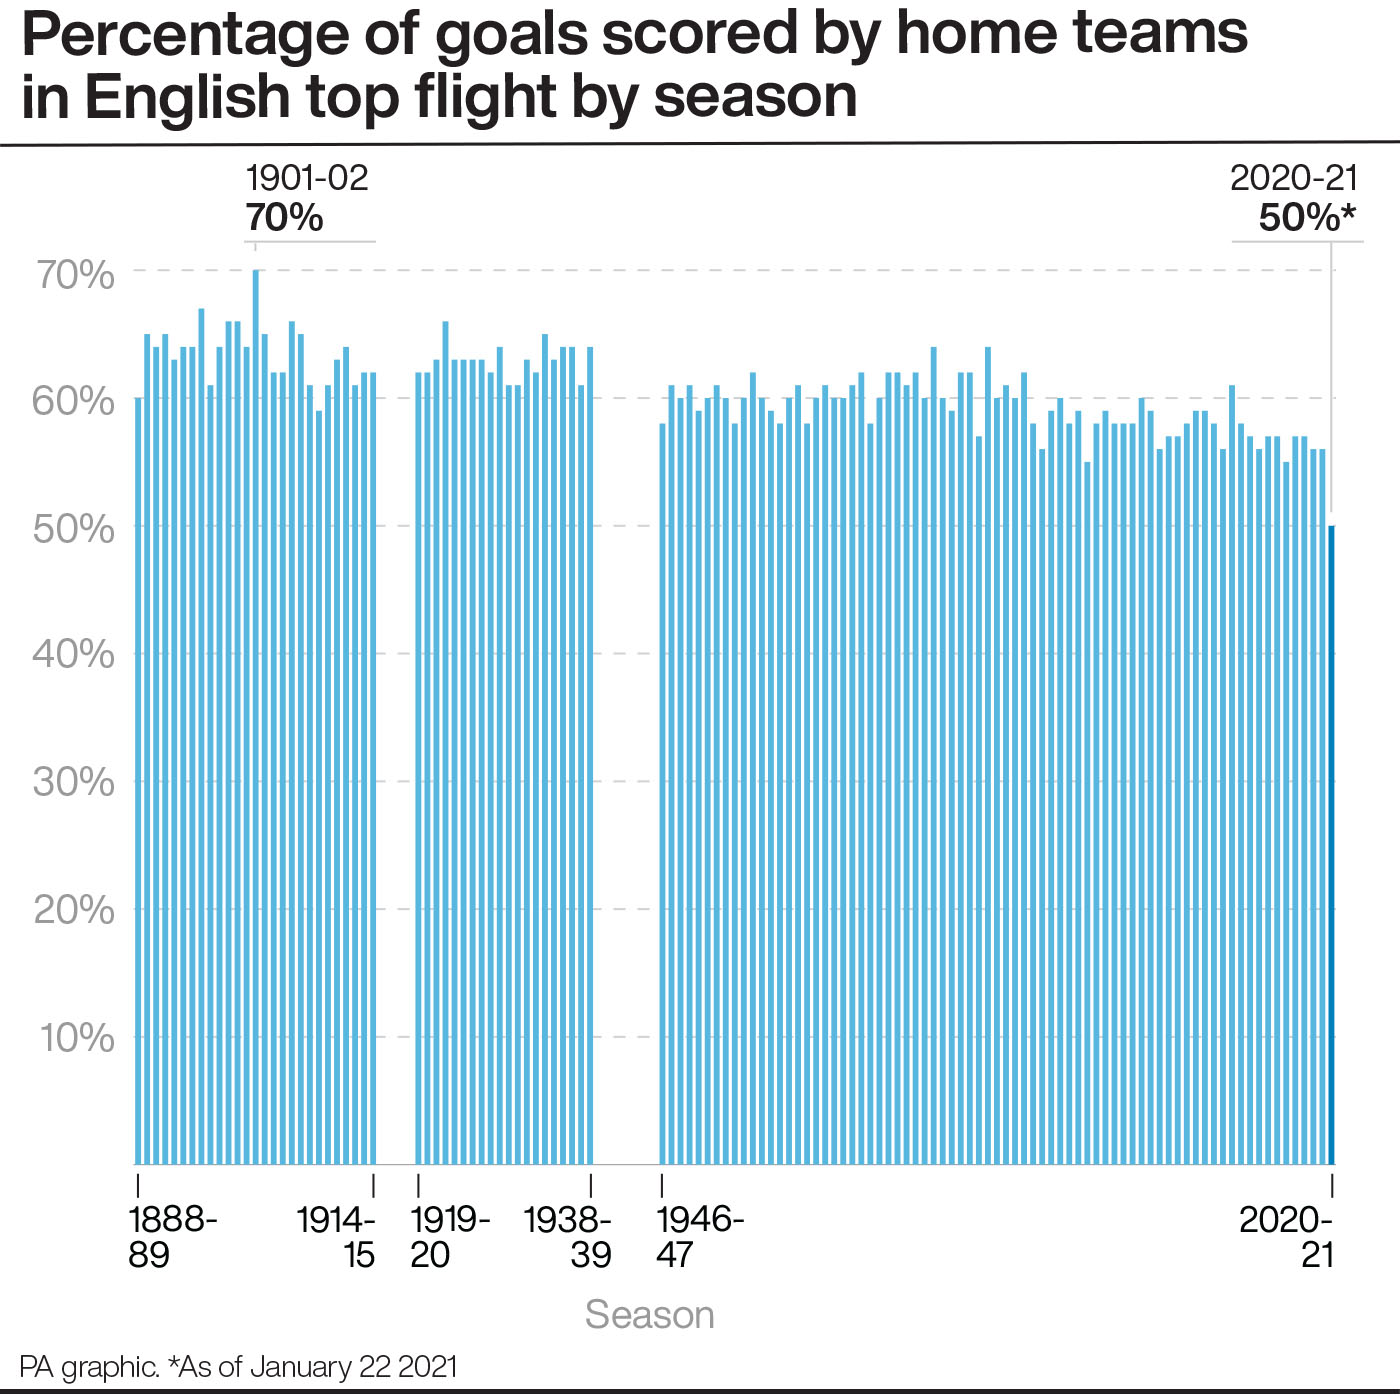 Percentage of goals scored by home teams in English top flight by season